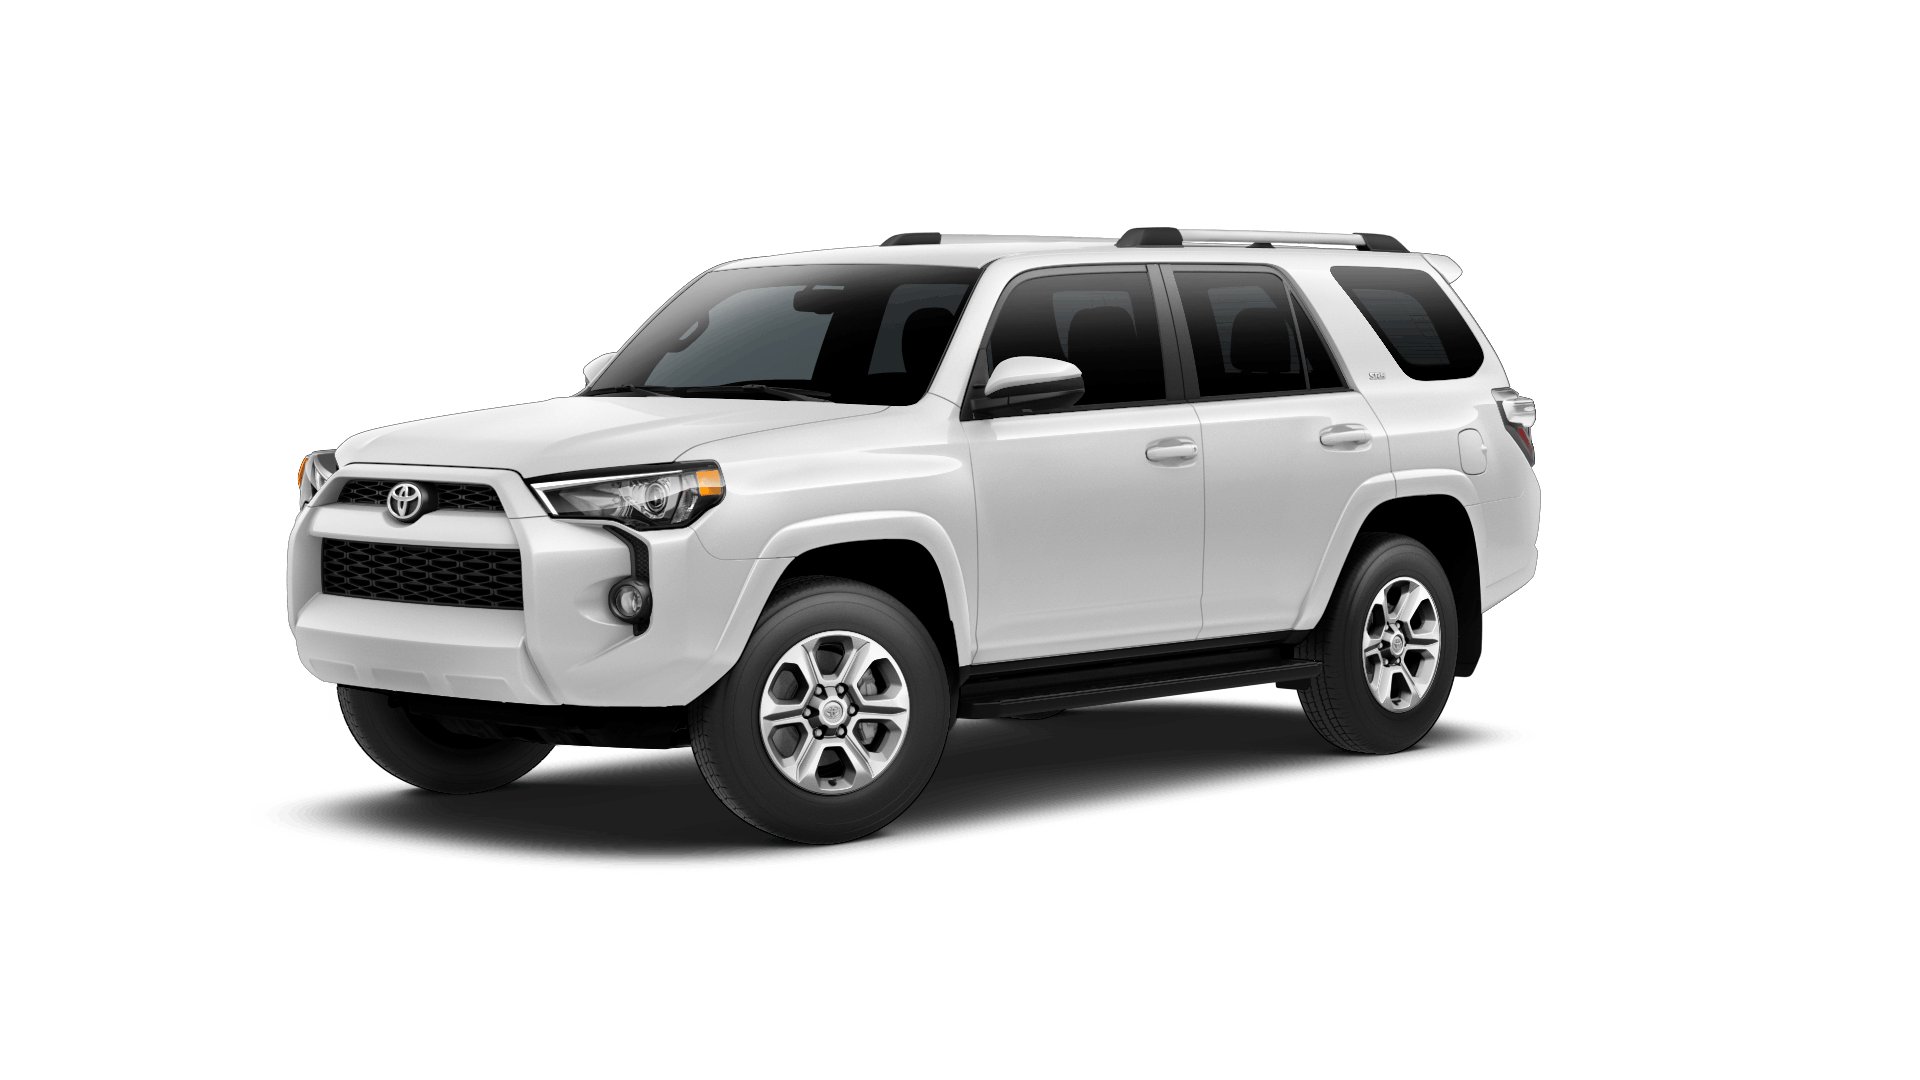 Toyota 4Runner Towing Capacity >> Compare 4Runner vs. Pathfinder | Find Toyota in the ...